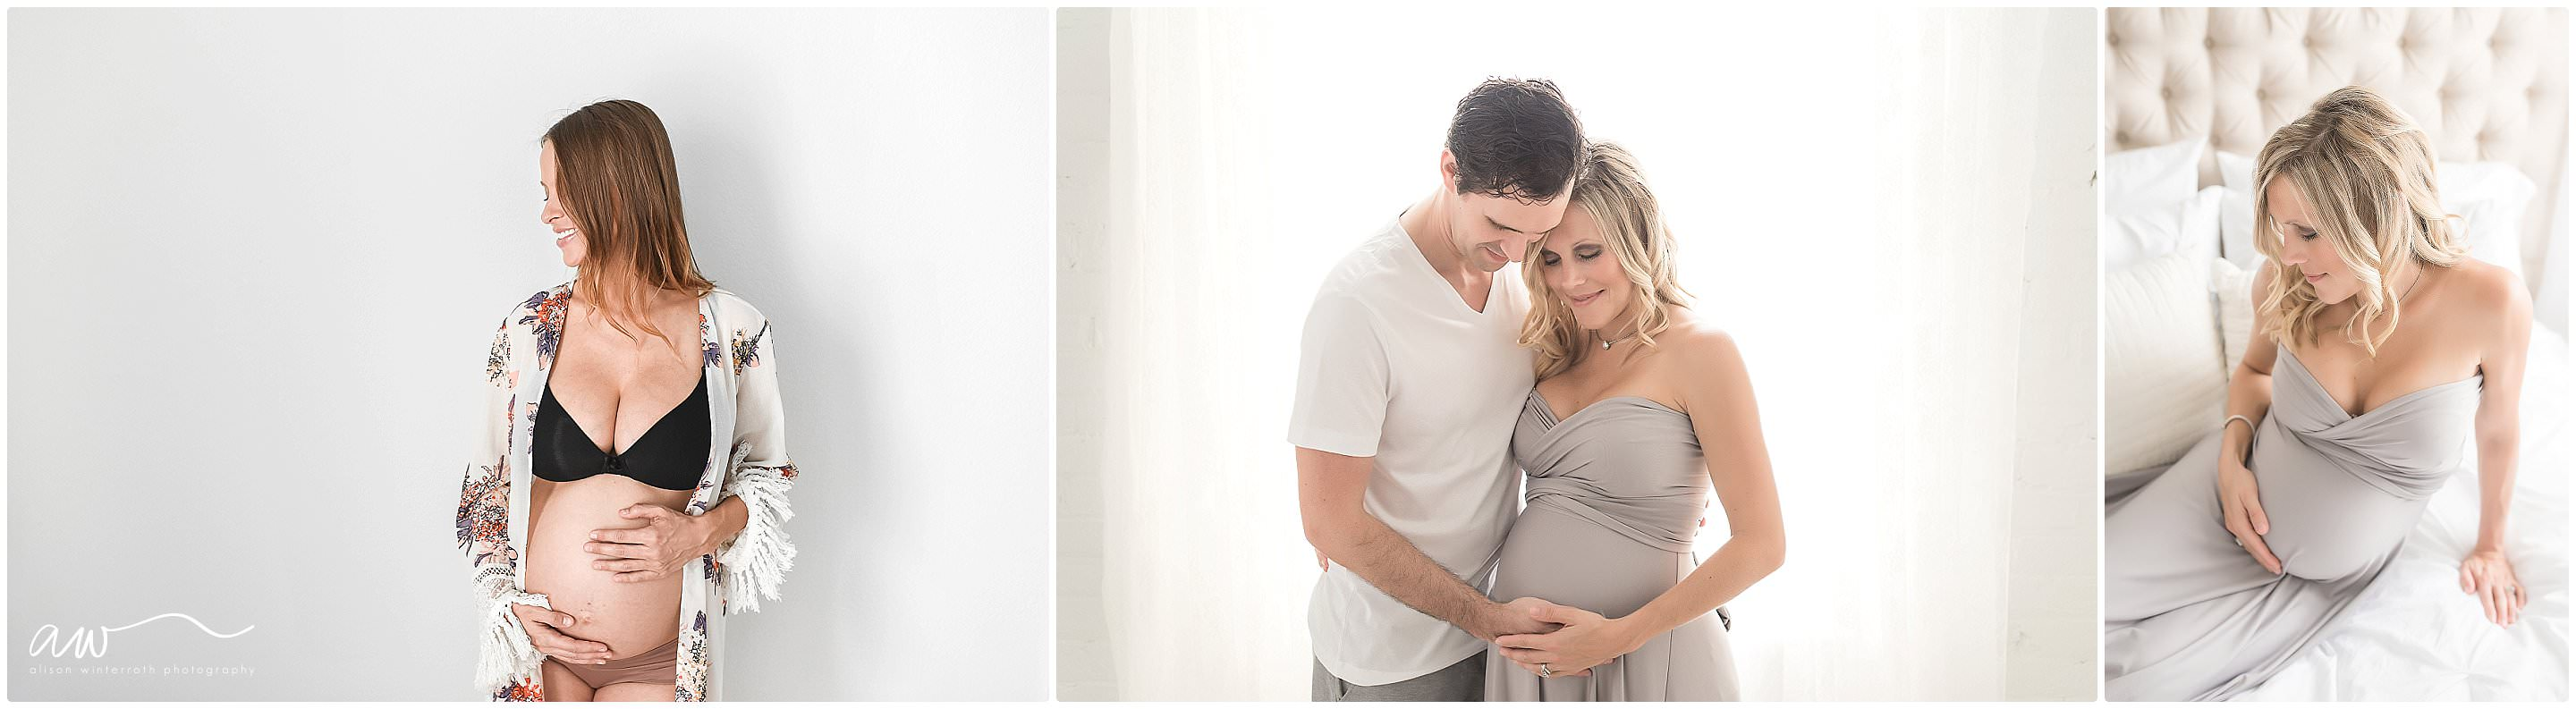 photography-studio-wardrobe-for-women-and-maternity-sessions_0220